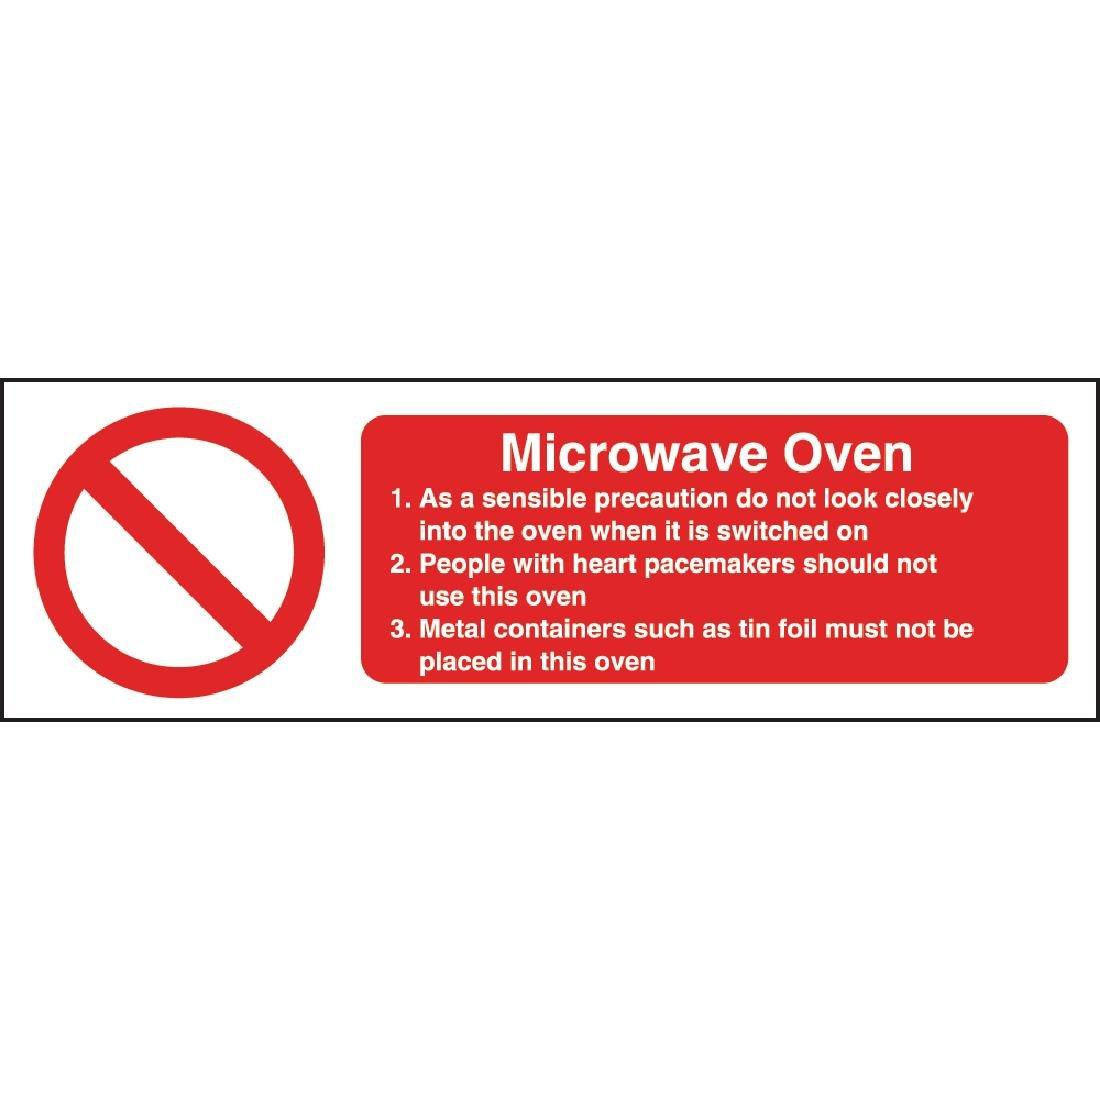 W231 - Microwave Oven Safety Sign